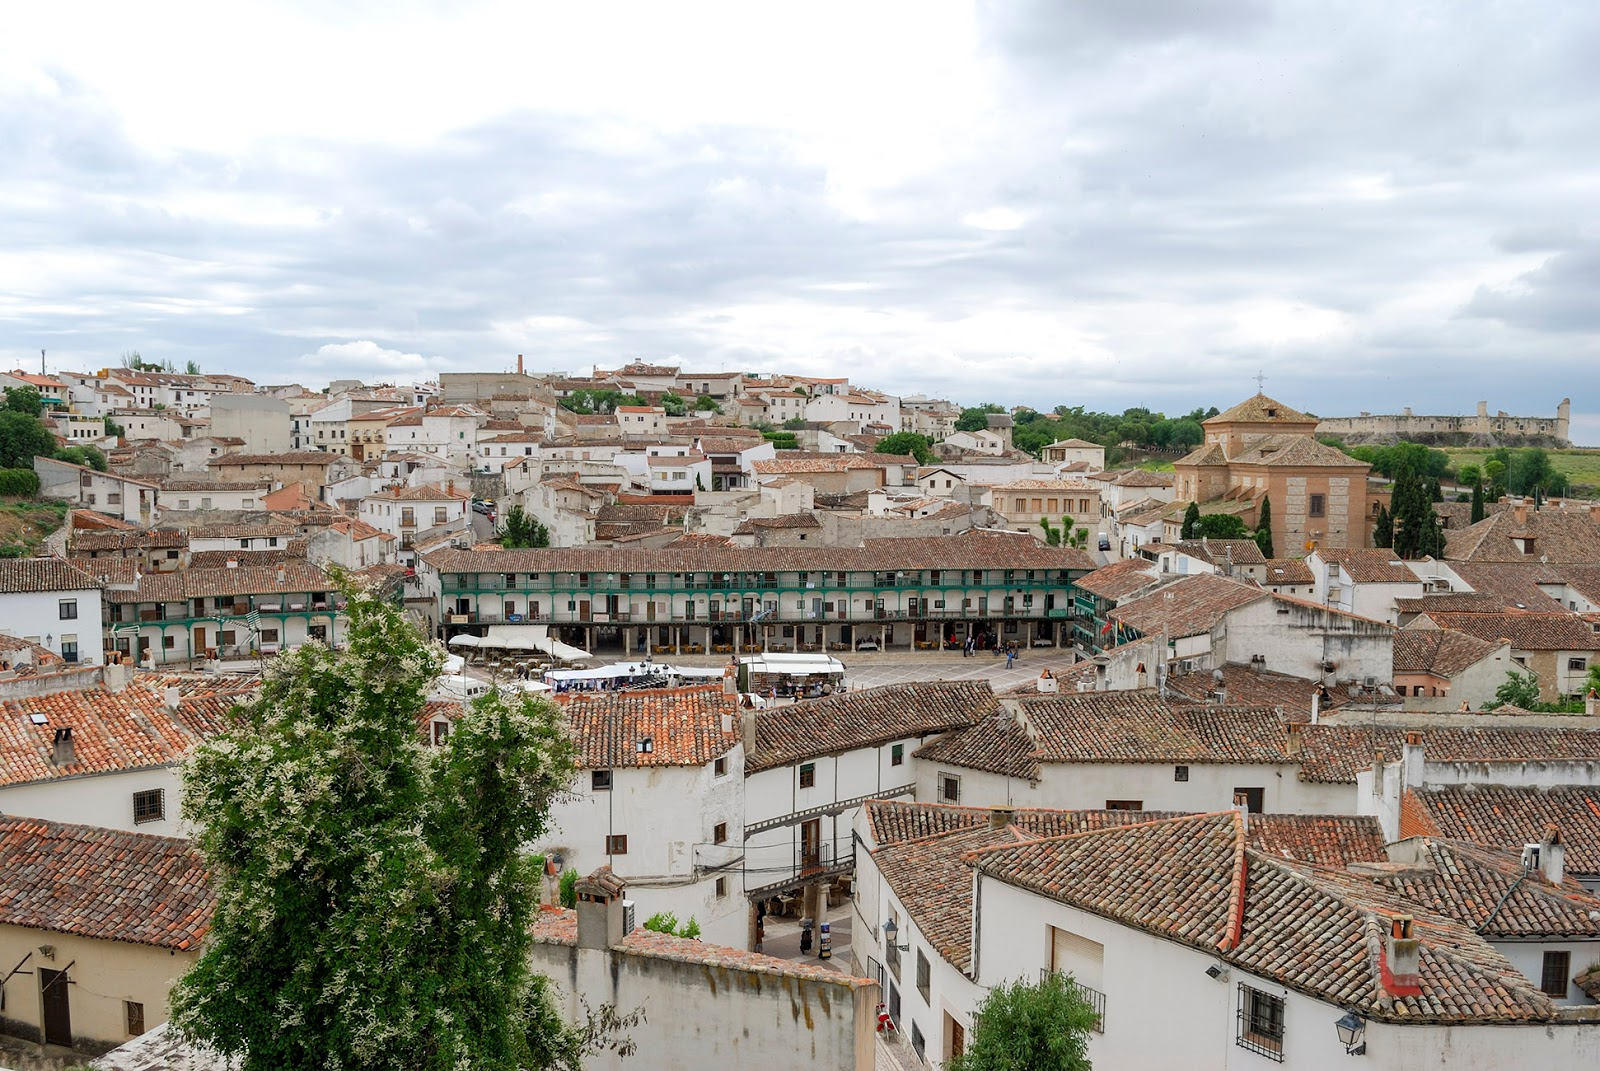 vista aerea birds eye chinchon madrid plaza mayor castillo pueblos bonitos spain